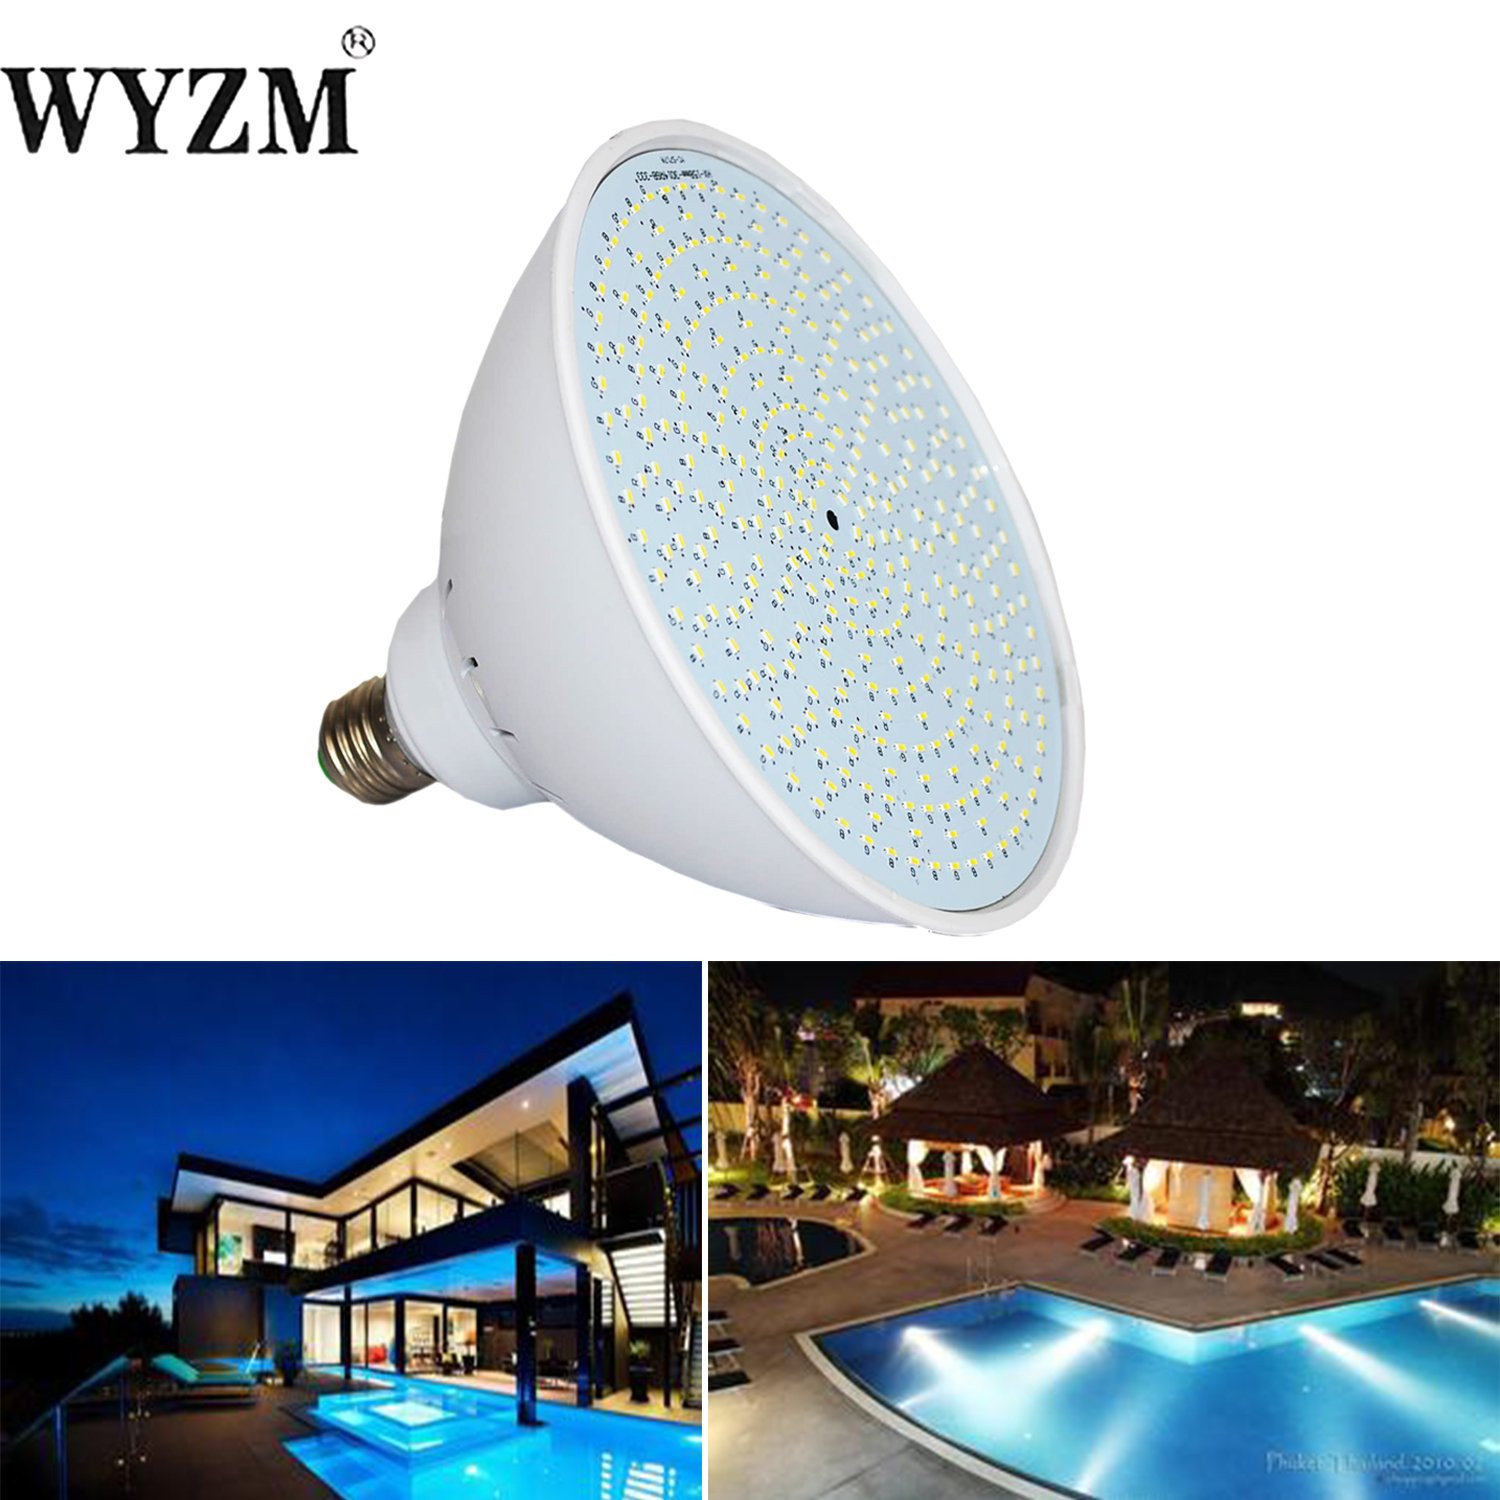 Best ideas about Pool Light Bulb . Save or Pin WYZM 120V 35W Color Changing Swimming Pool Lights LED Now.